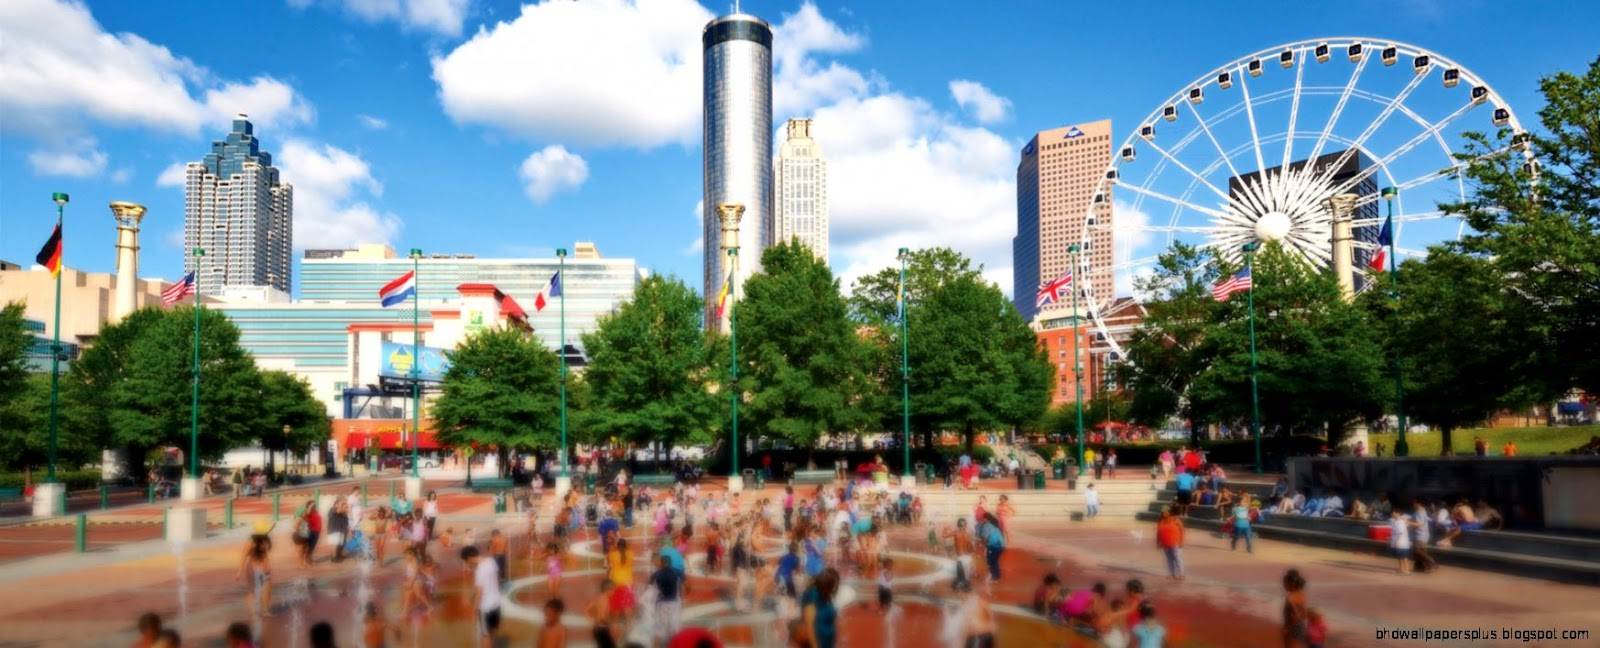 50 Fun Things to Do in Atlanta   Find Top Attractions  Things to Do